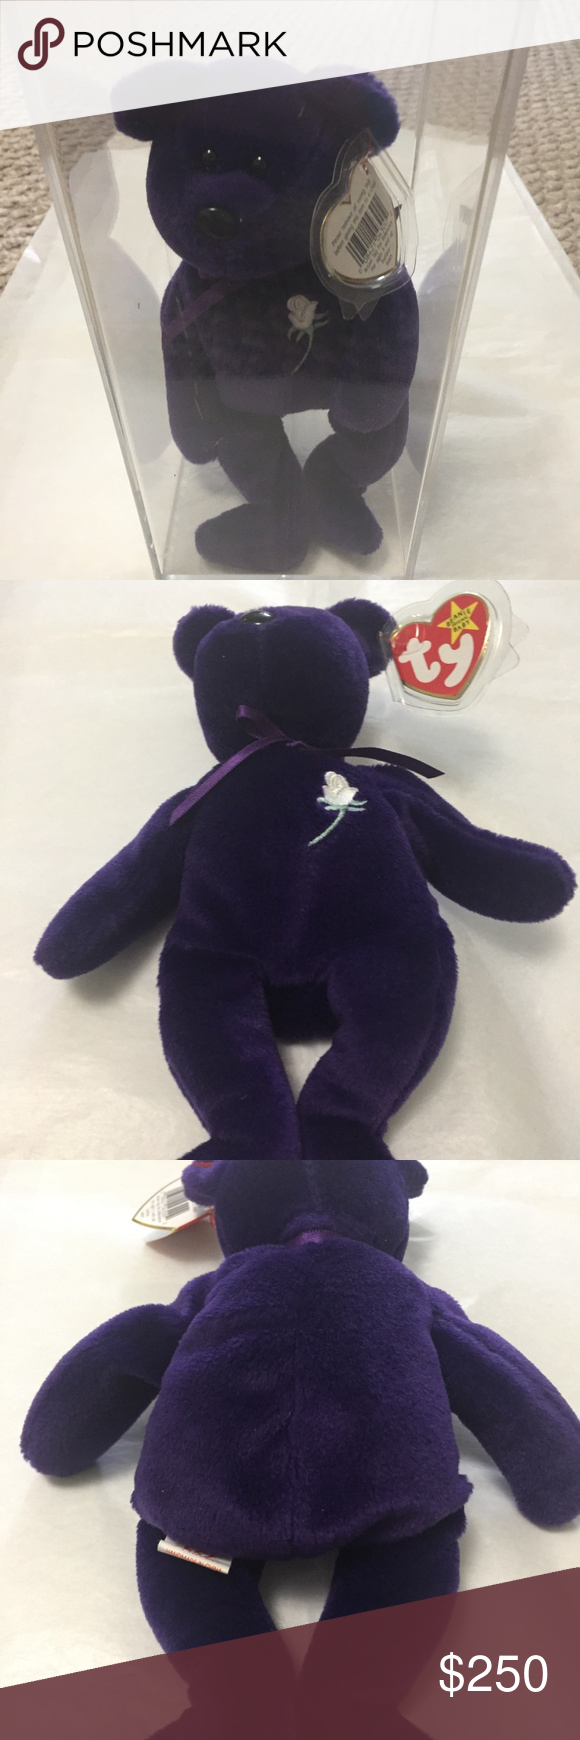 RARE 1ST EDITION PRINCESS DIANA BEANIE BABY. MINT! in 2020